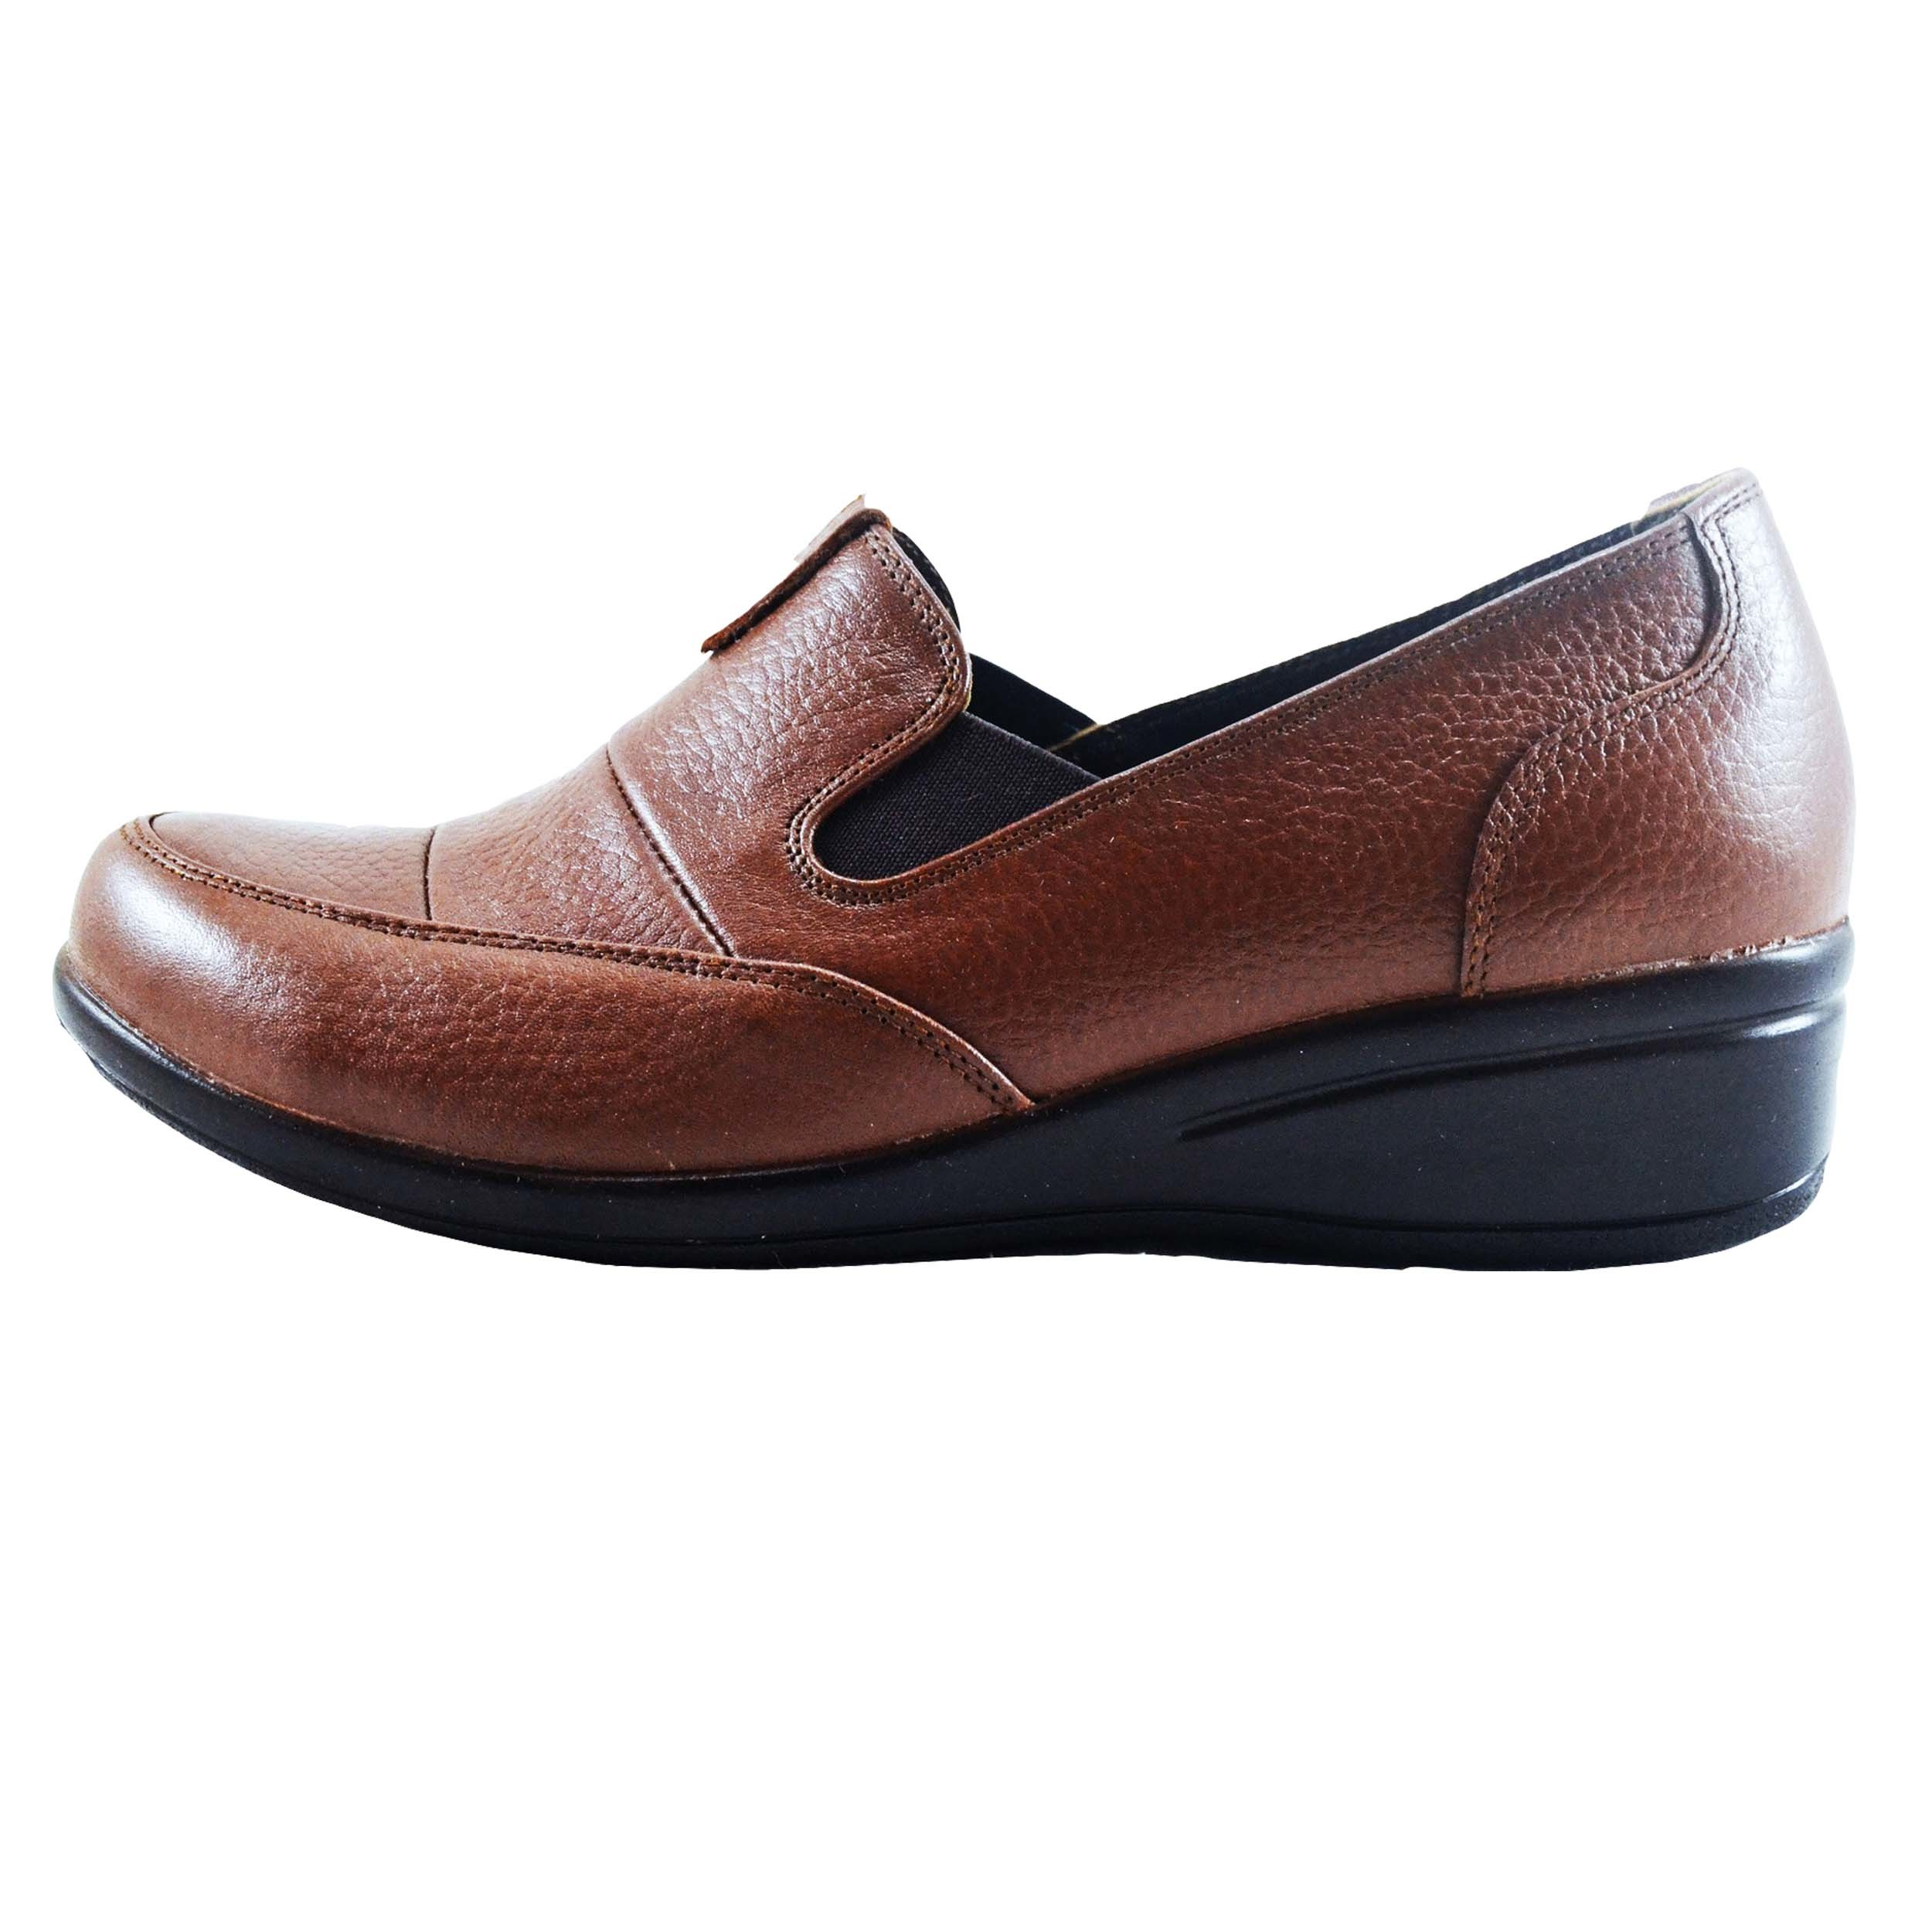 Medical Genuine Leather Women Shoes